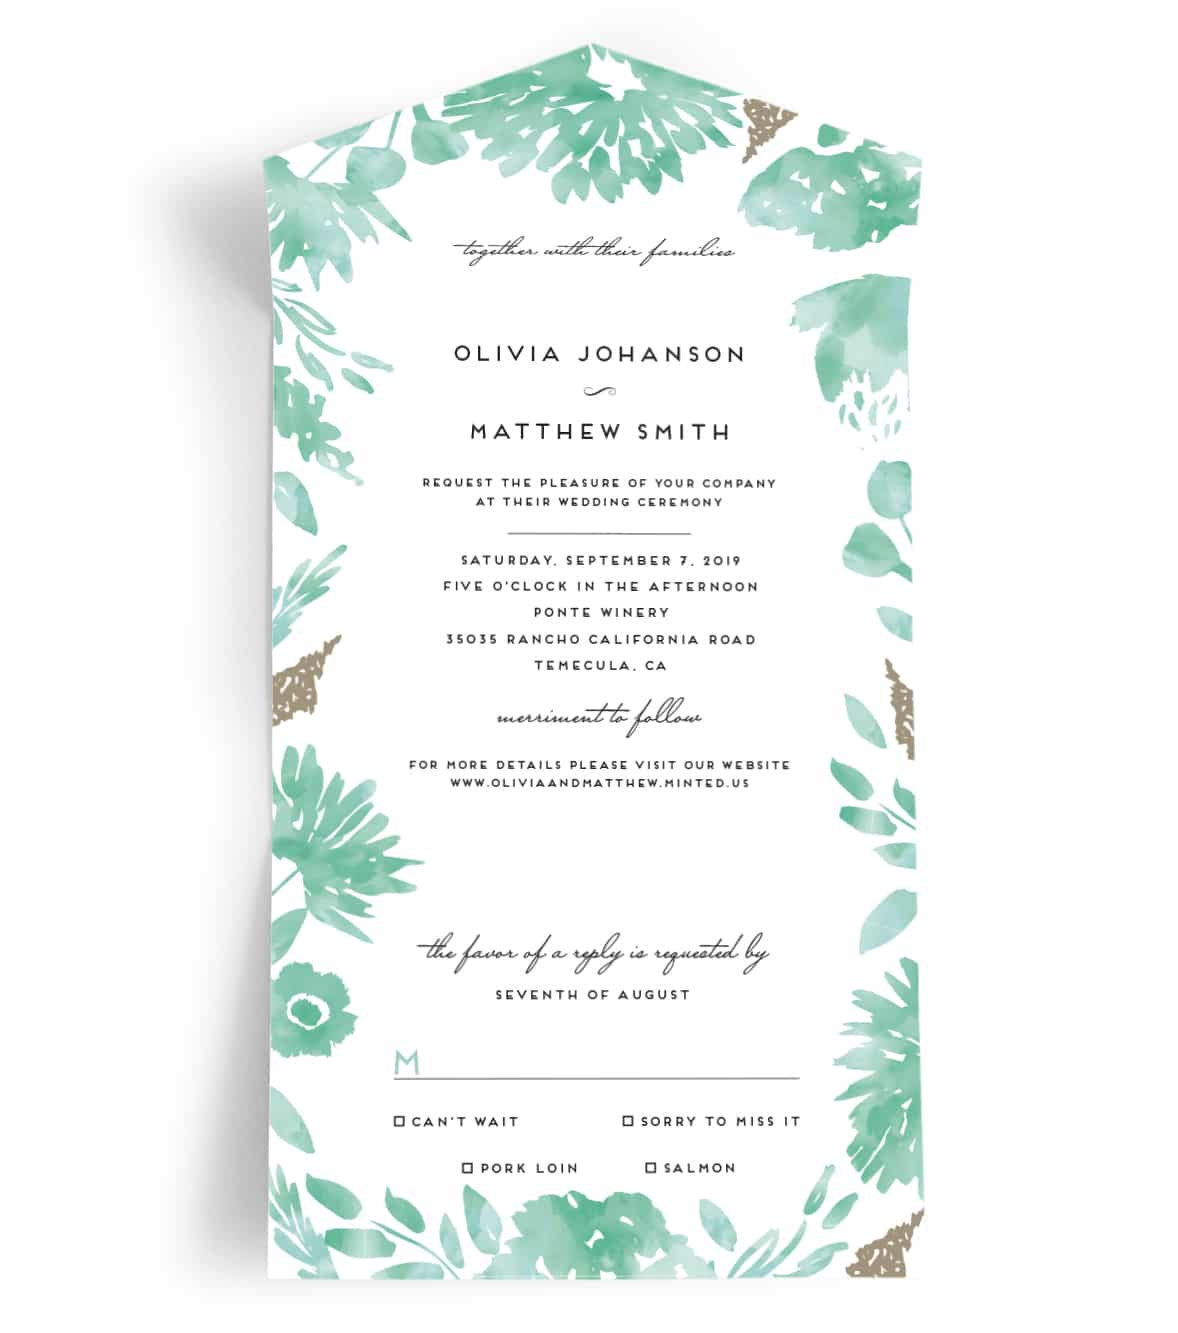 All-In-One Wedding Invitation from Minted